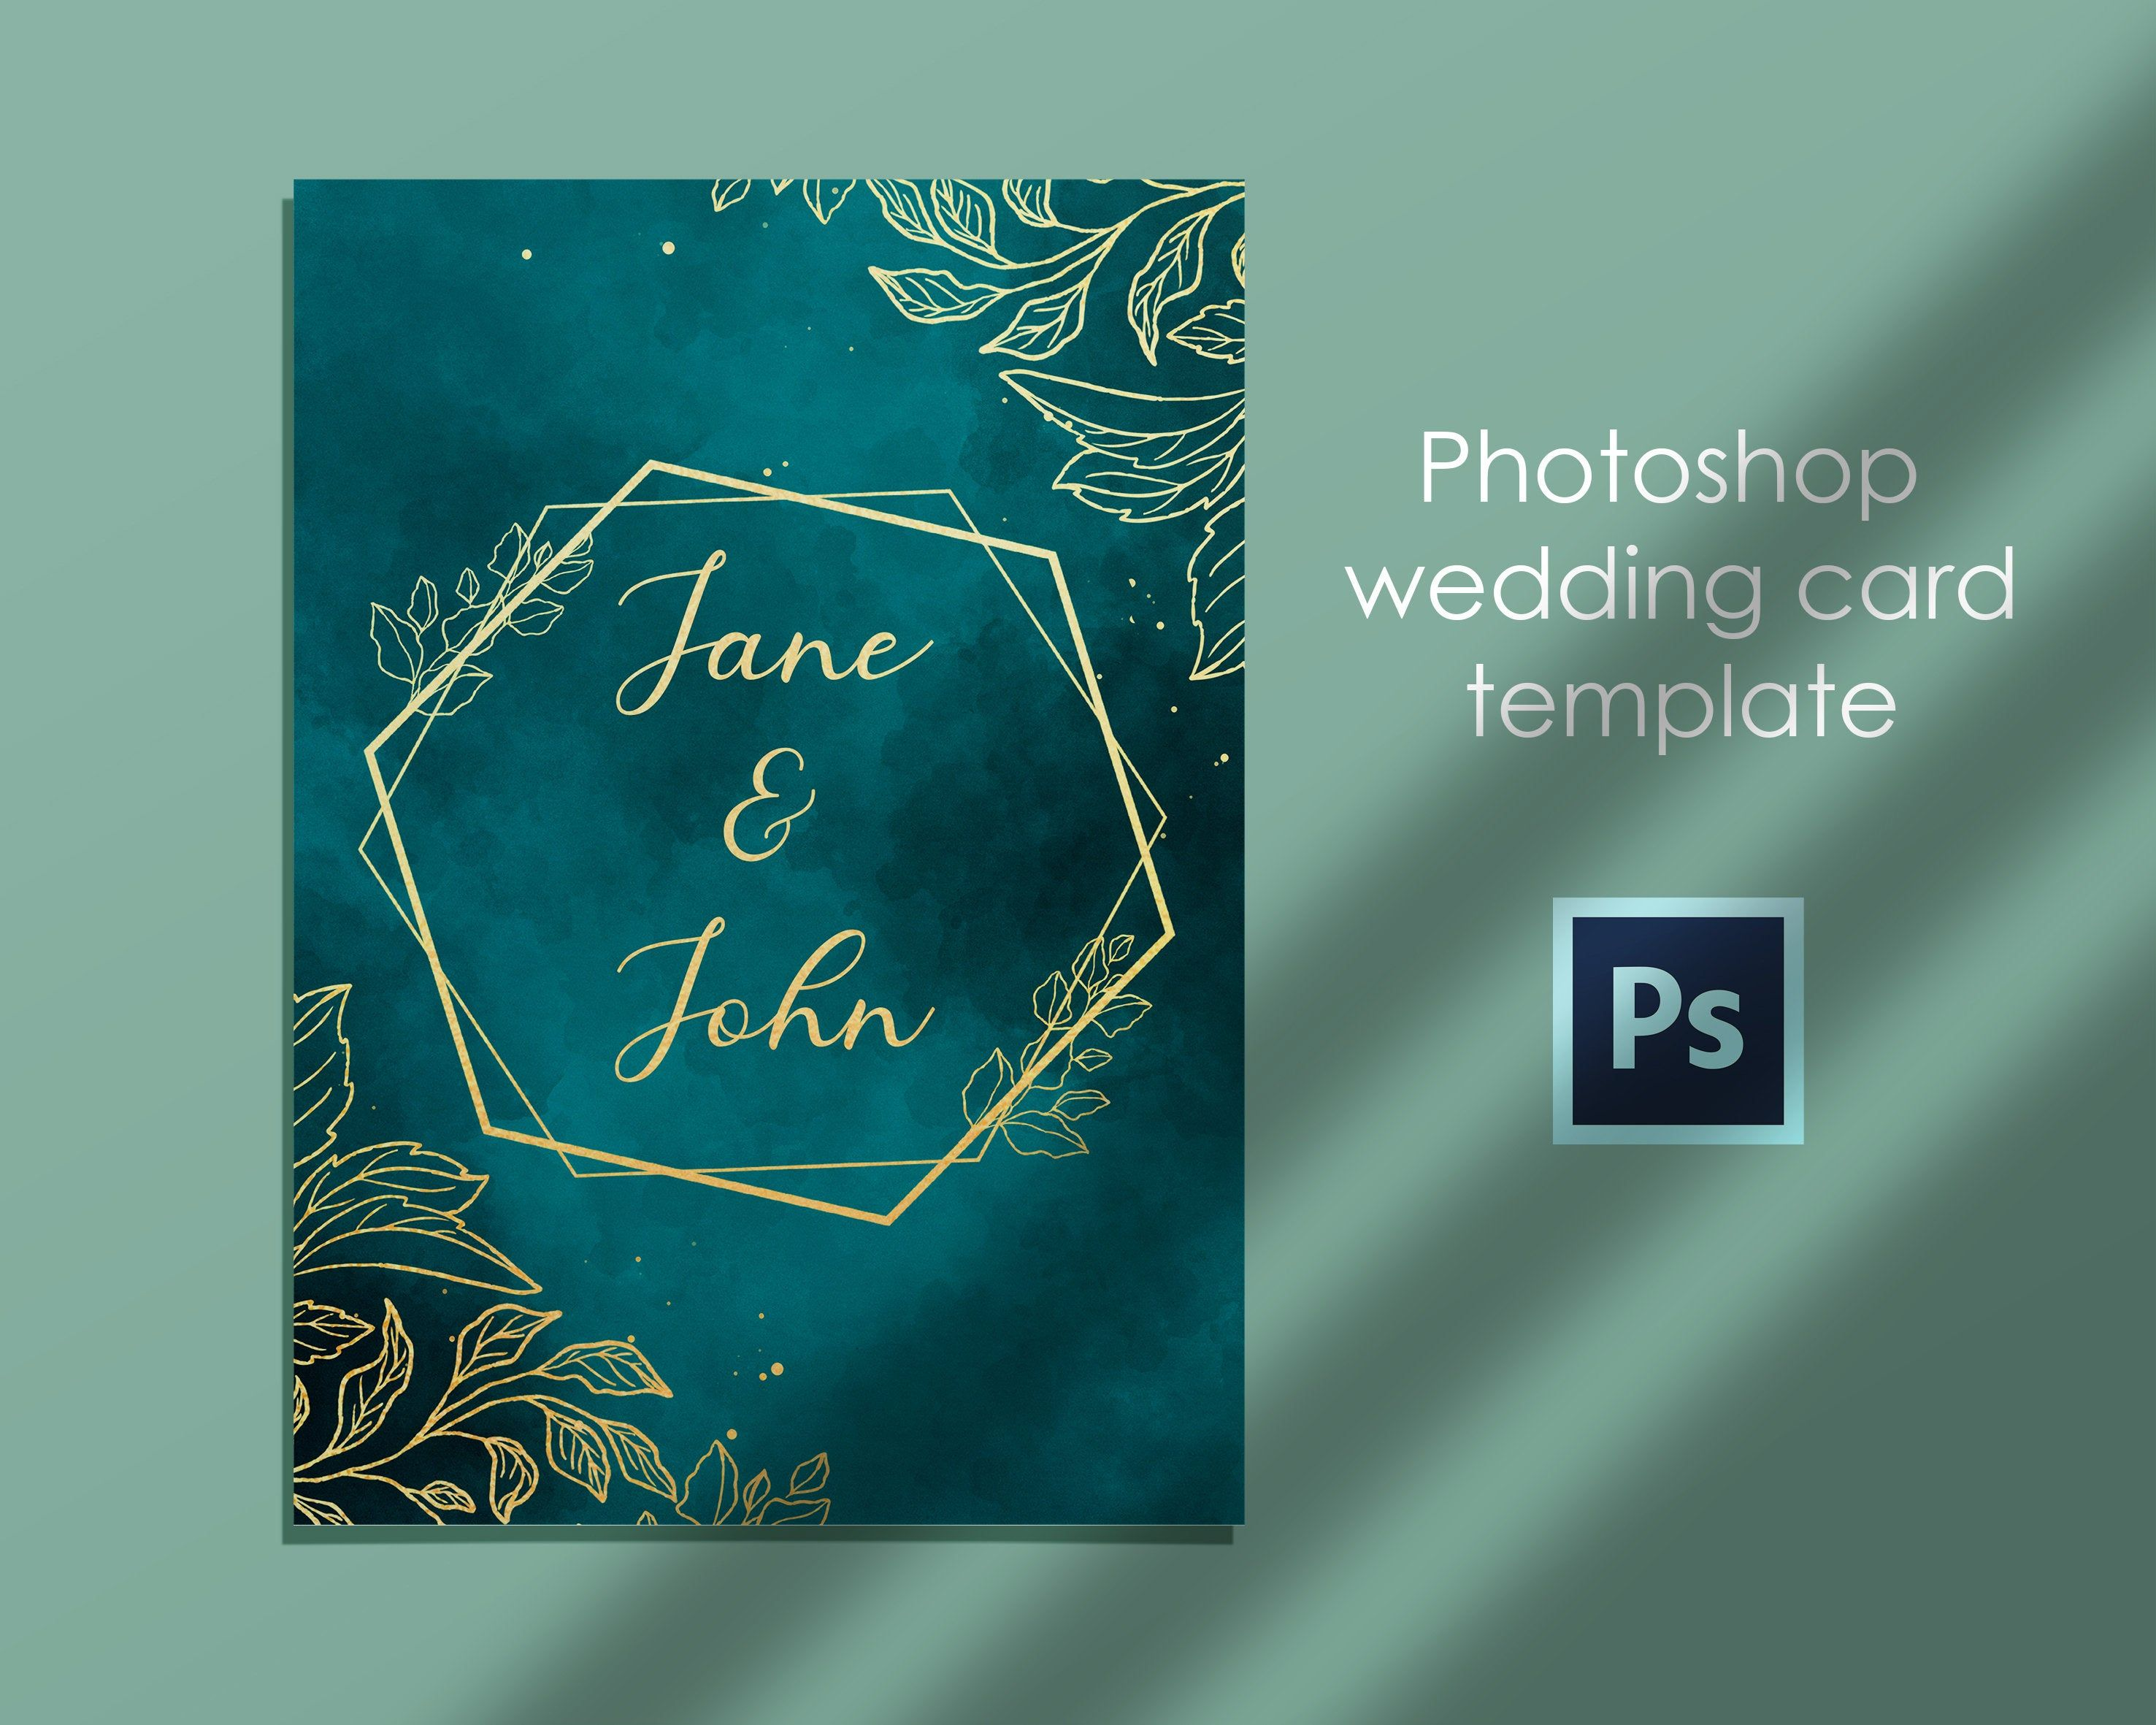 Instant Download Photoshop Editable Wedding Card Template Psd Template Printable Invitation Card In 2020 Printable Invitation Card Wedding Card Templates Wedding Cards